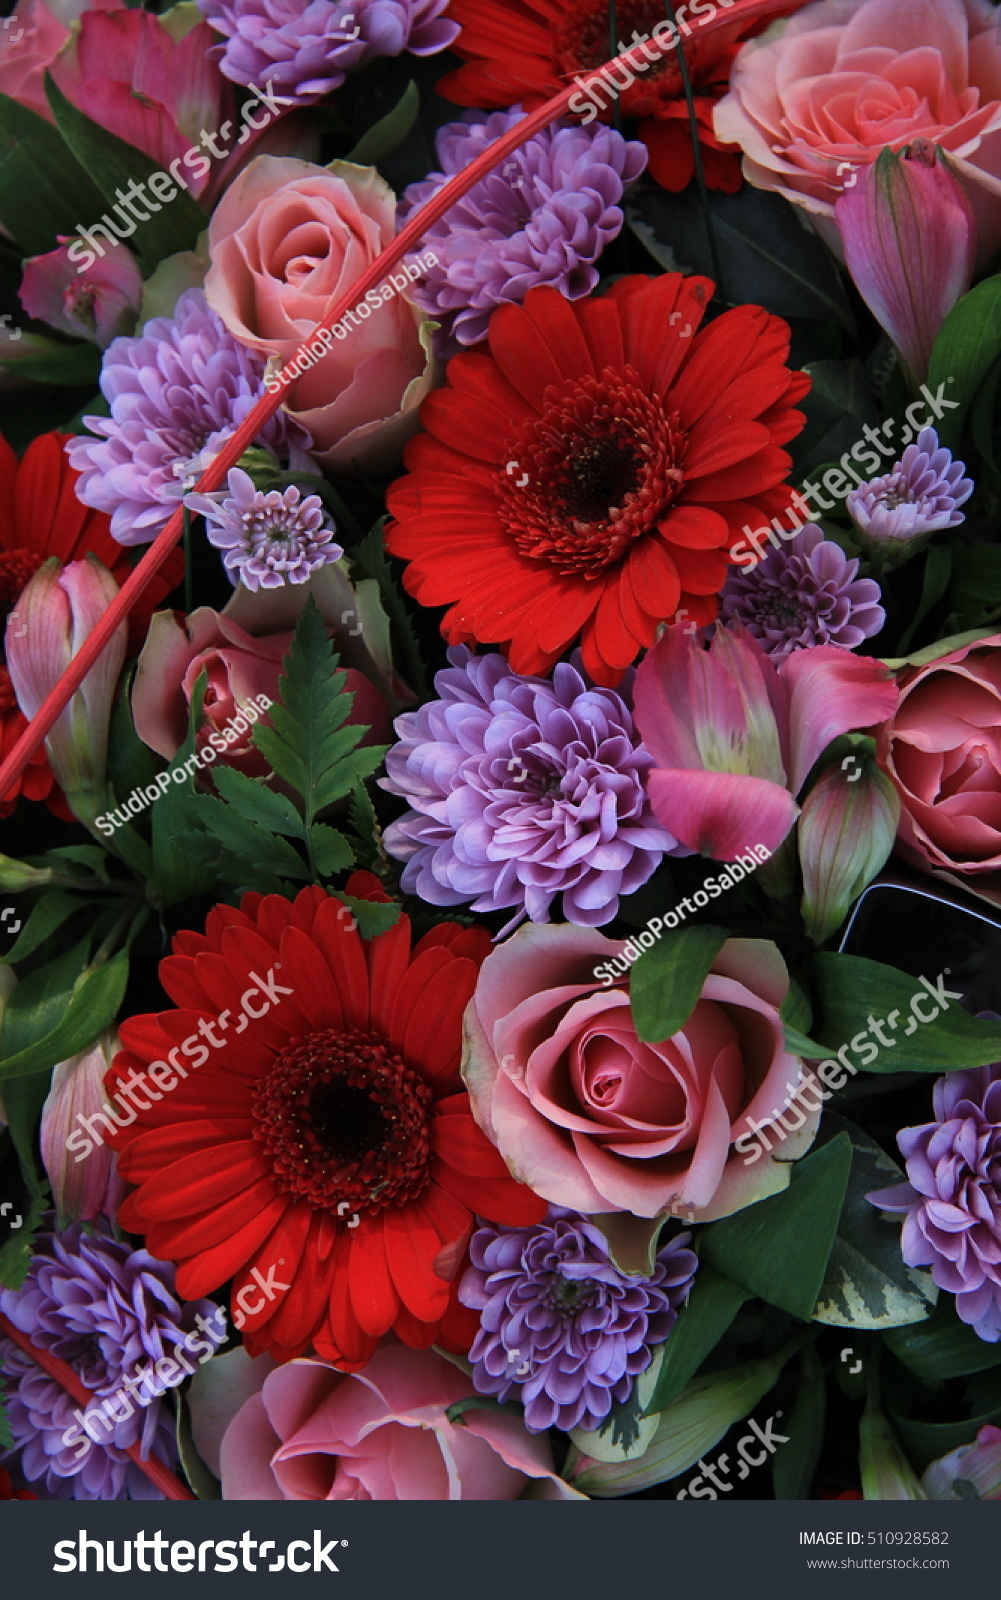 Mixed Flower Arrangement Various Flowers In Red And Pink For A